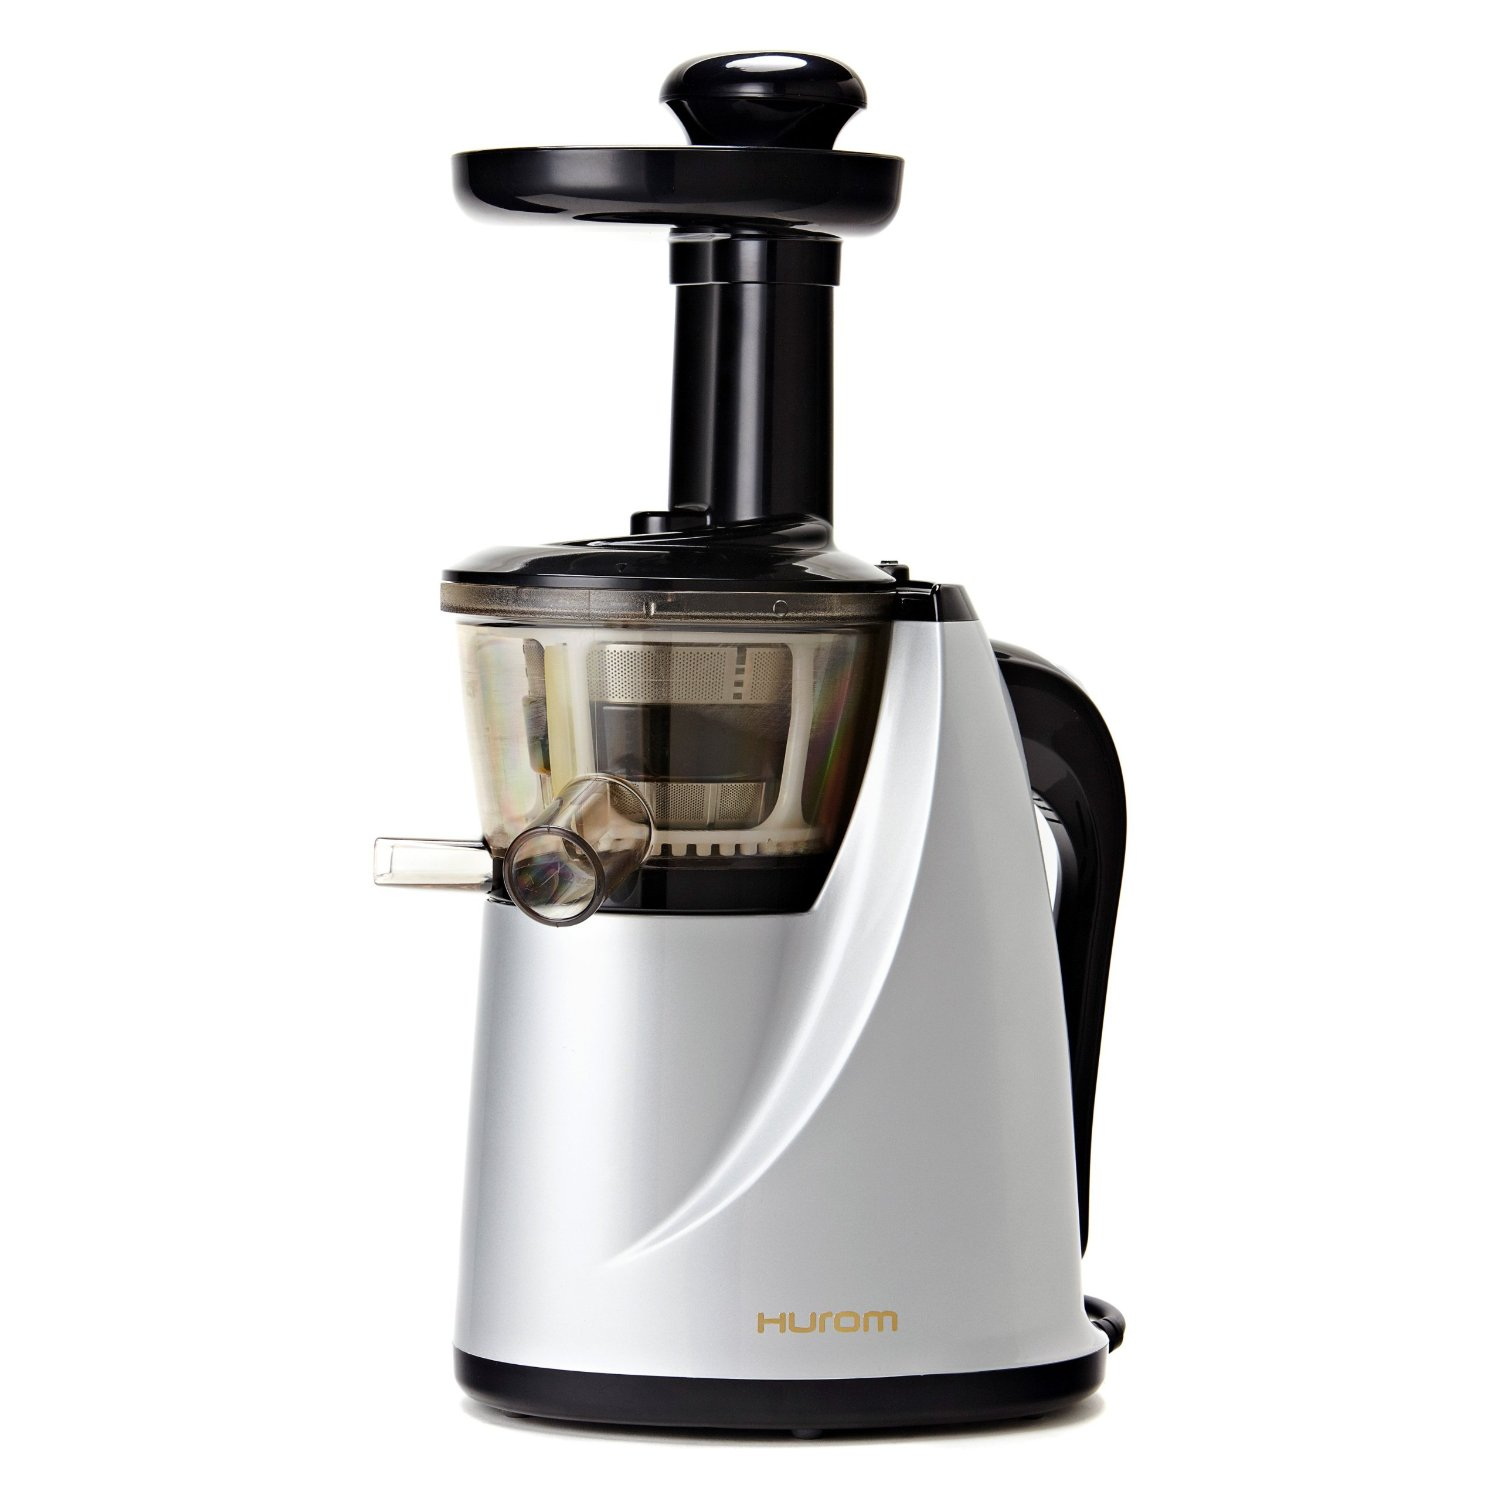 Giocoso Slow Juicer Review : Hurom HU-100 Masticating Slow Juicer Review - Best Cold Press Juicers